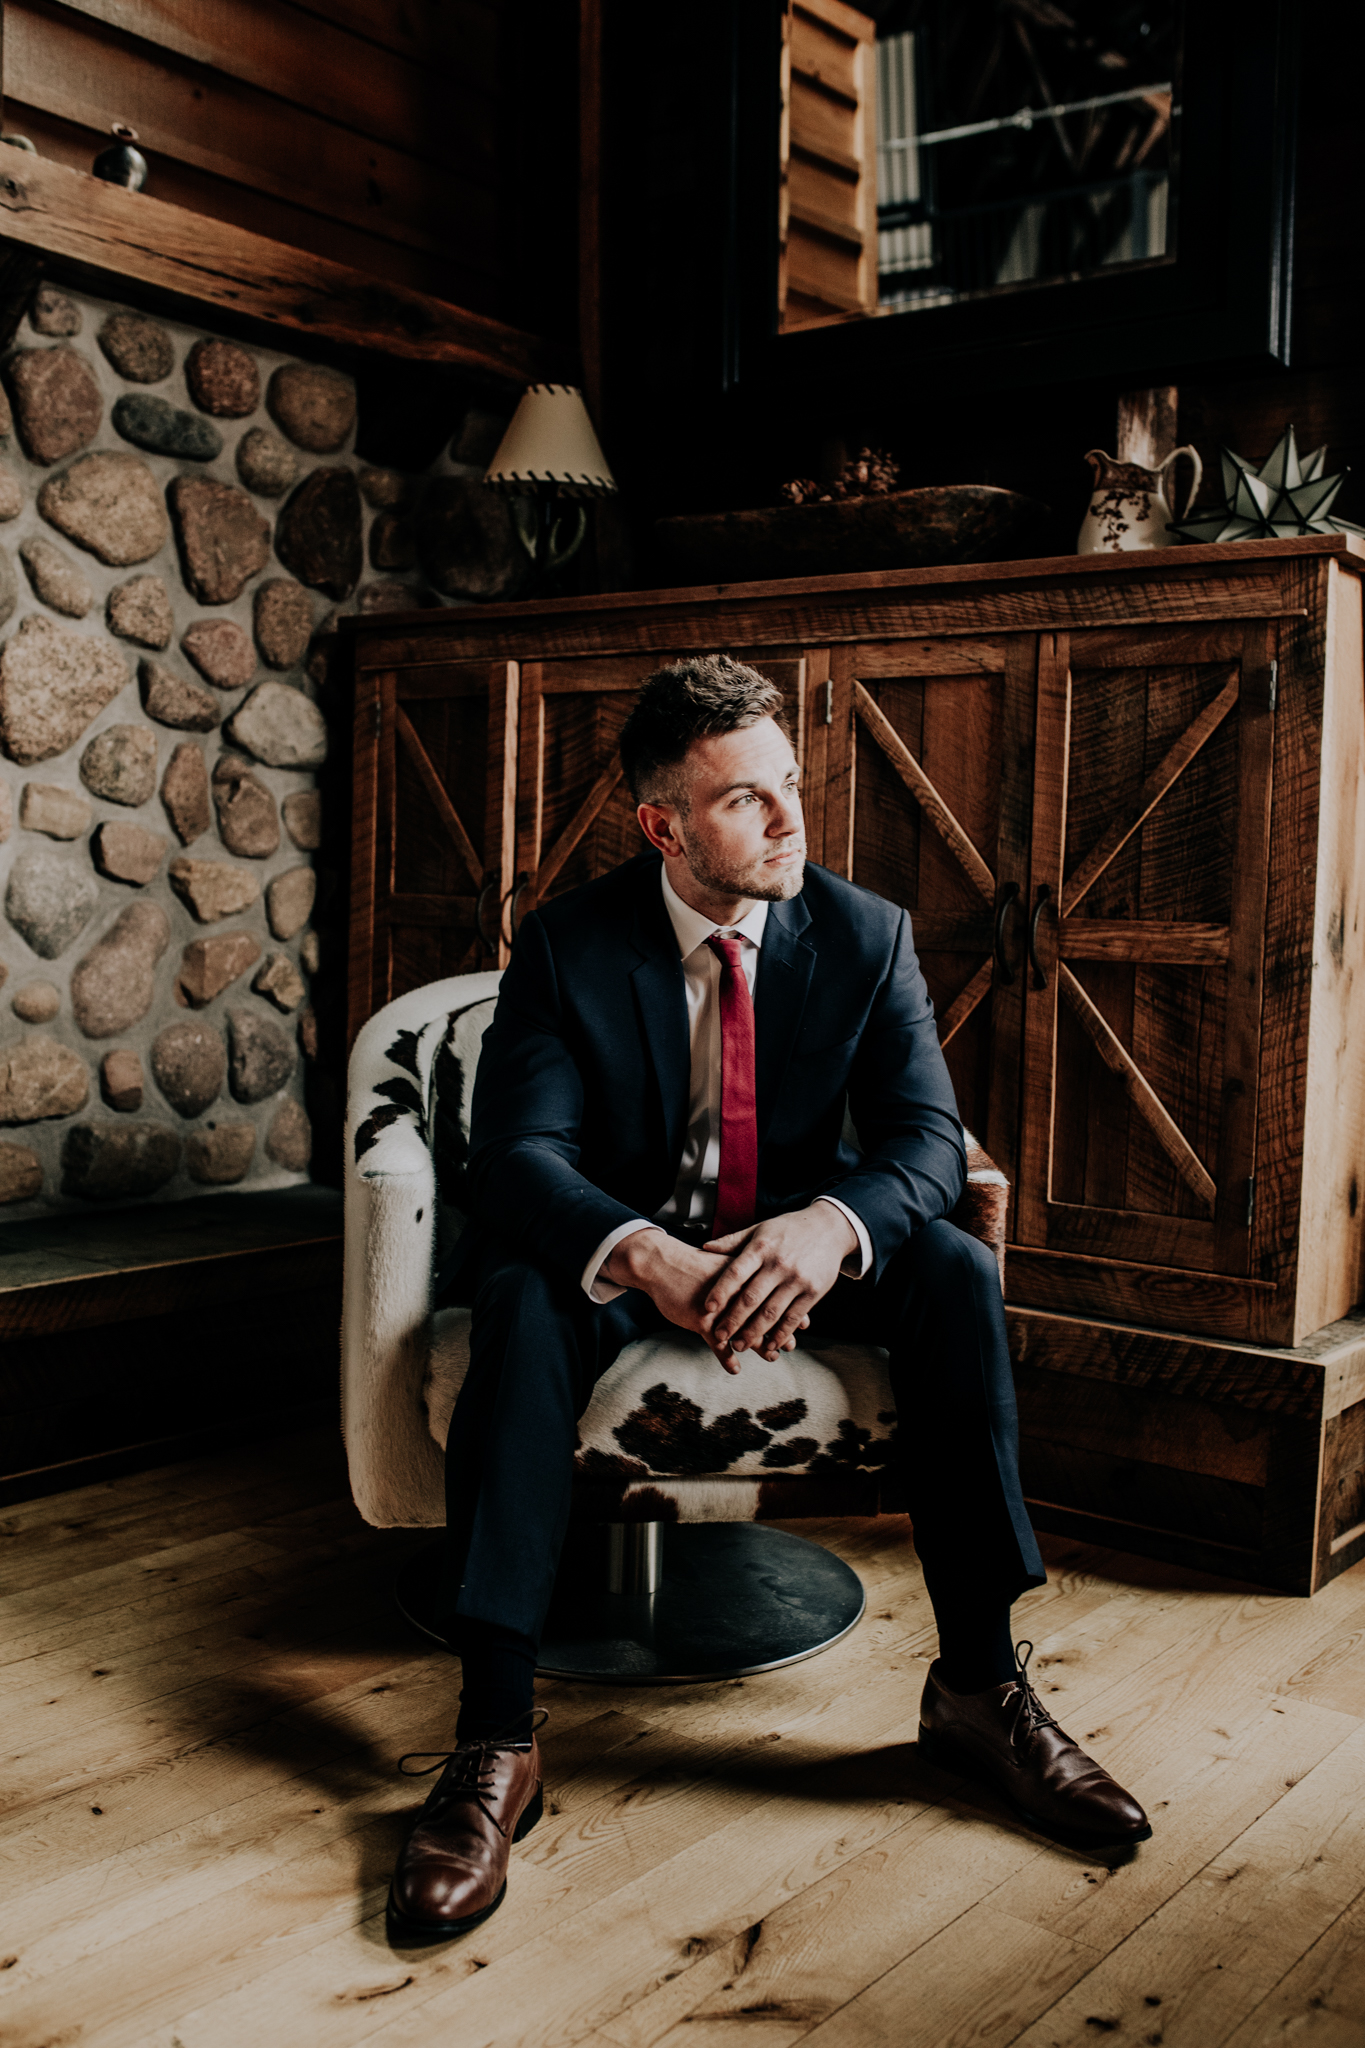 The Black Tux - Groom Photos - Midwestern Bride Styling - Rustic Wedding - Cabin - Hove Photography